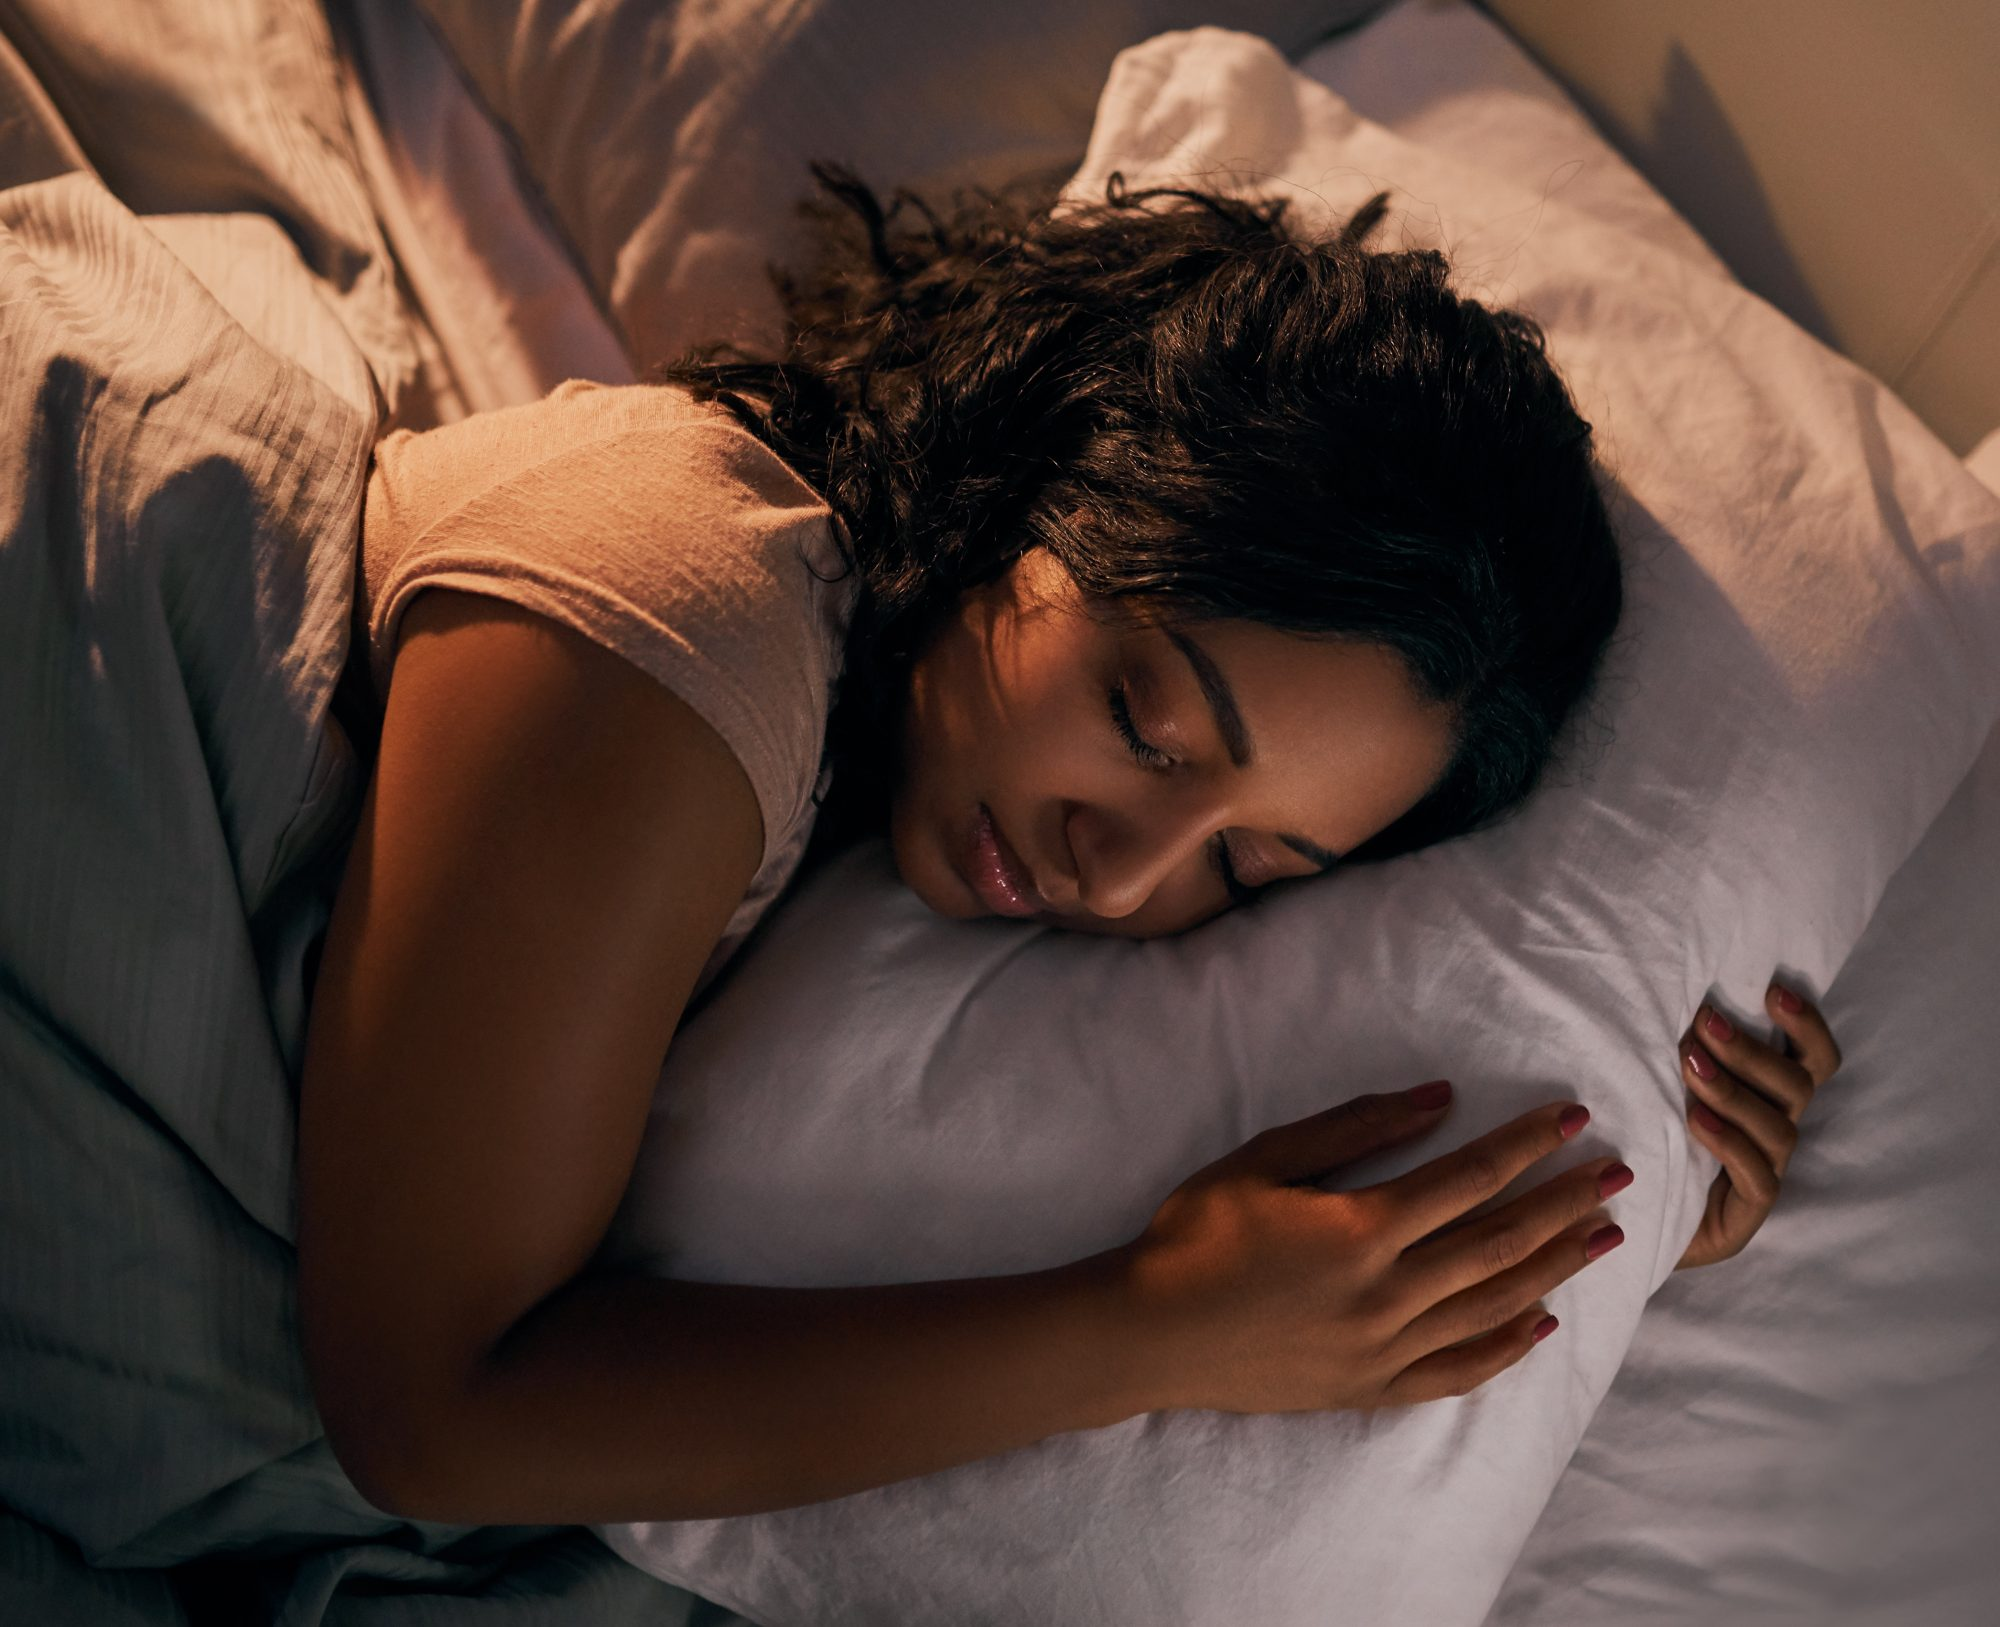 woman sleeping soundly in bed at night time